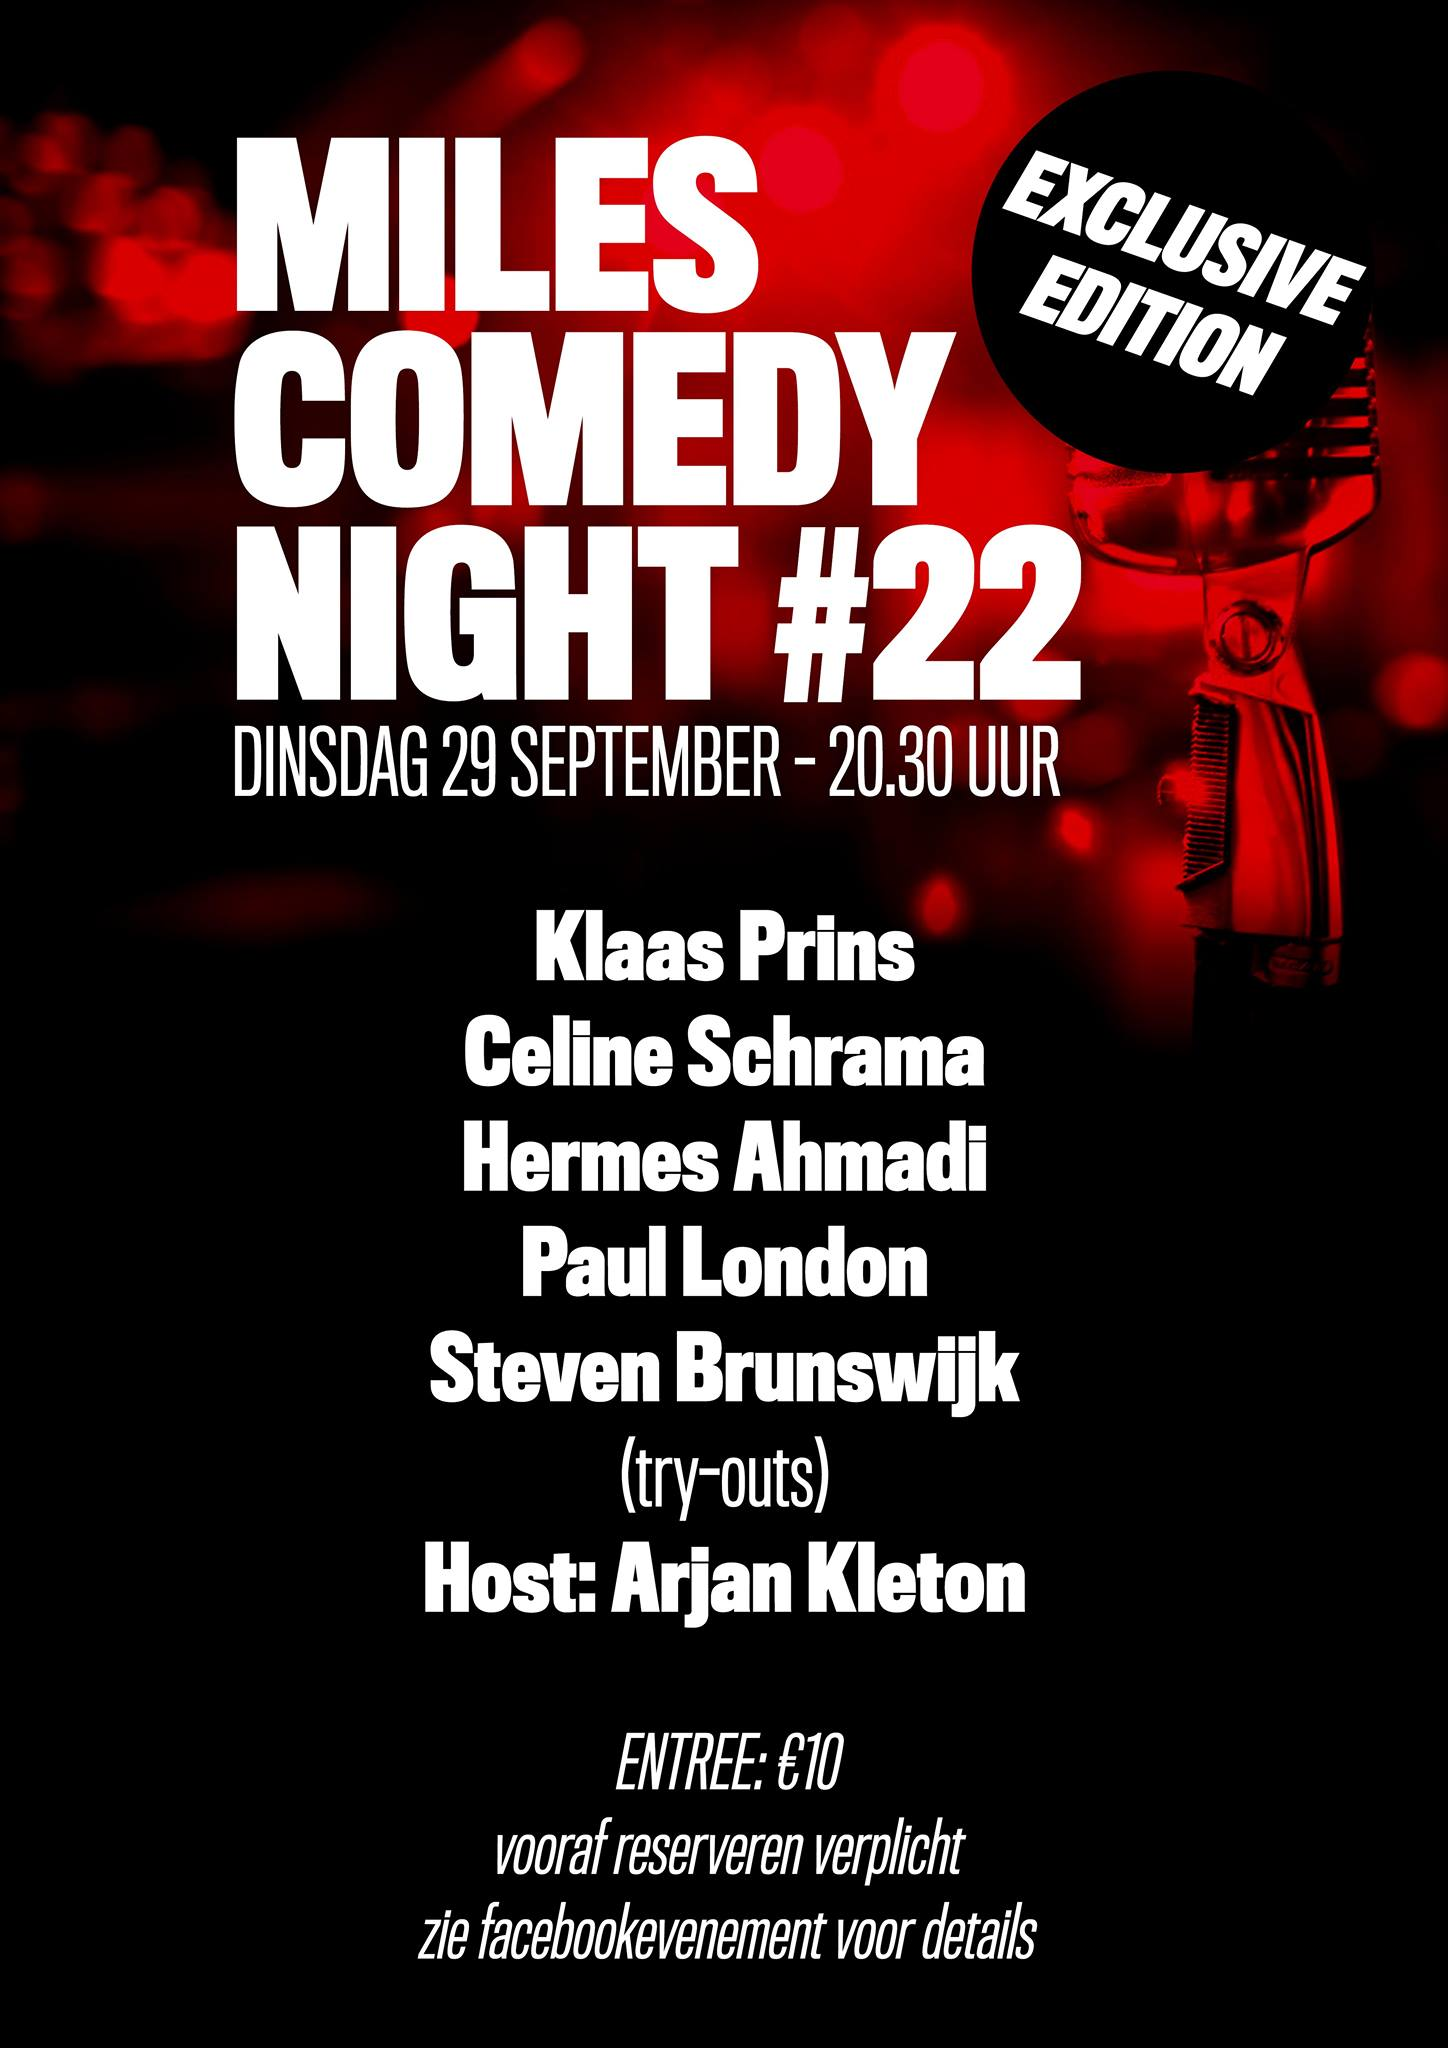 Comedy Night #22 @ Café Miles